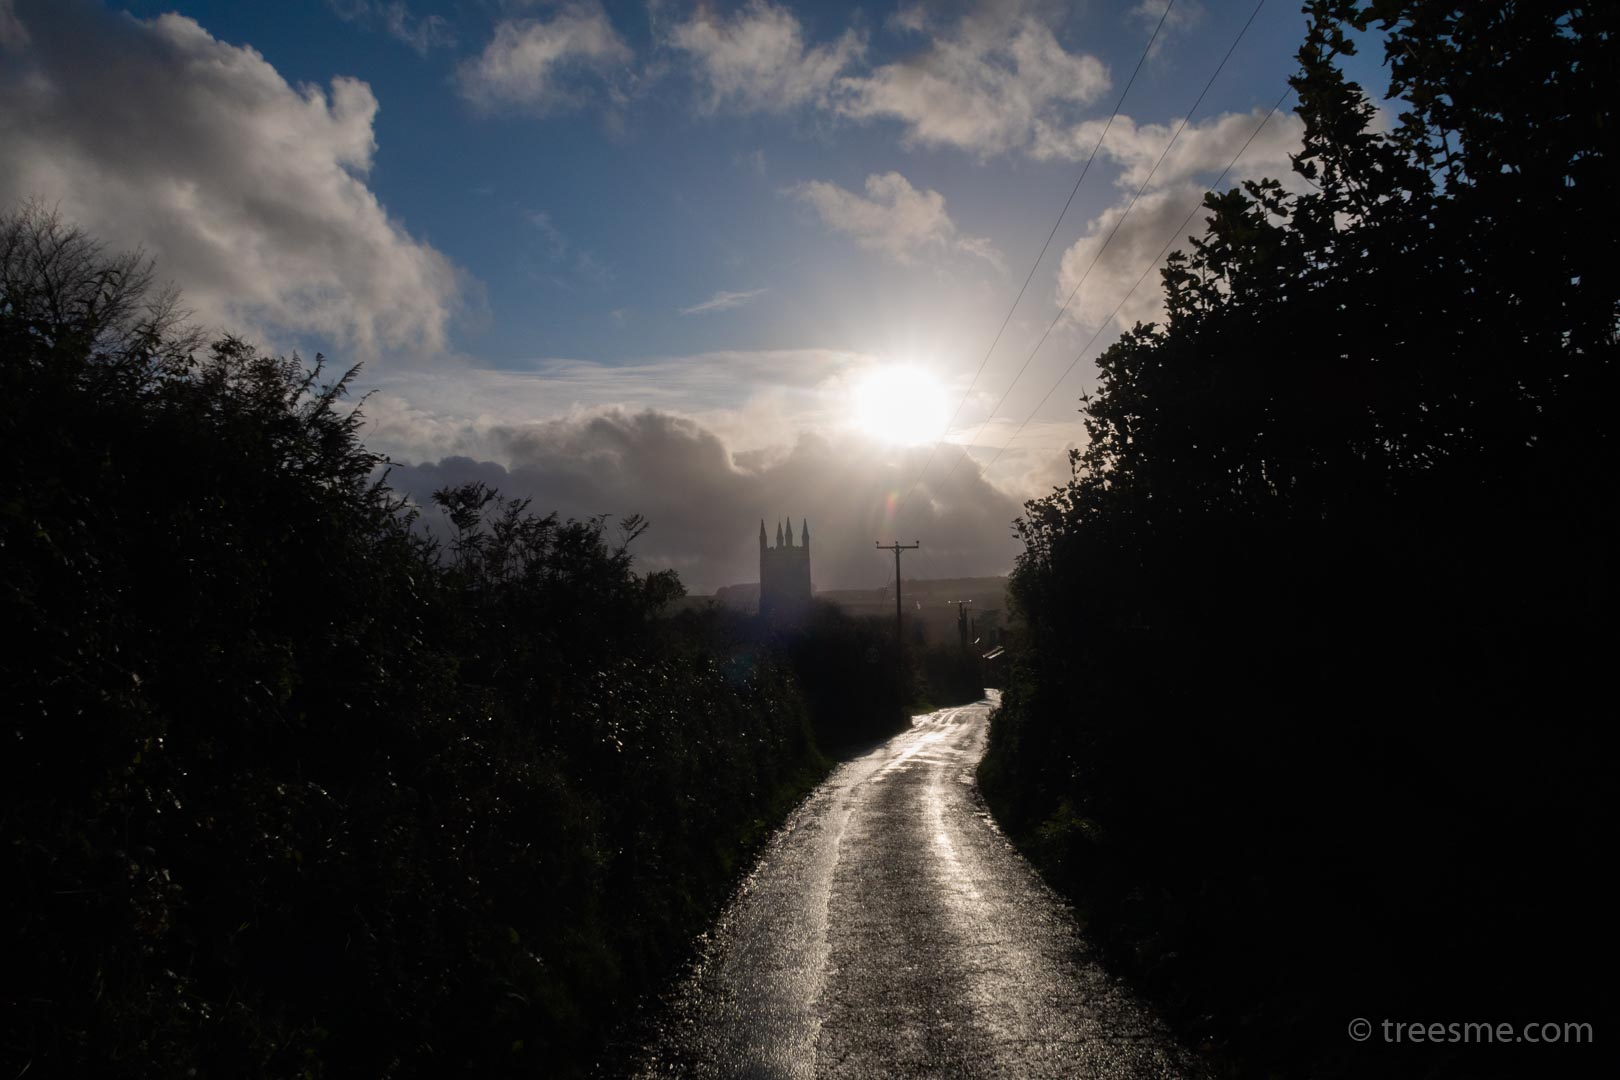 Autumn (October) – The Evening Sun, Clouds, Wind and Rain Over Stoke Climsland Church